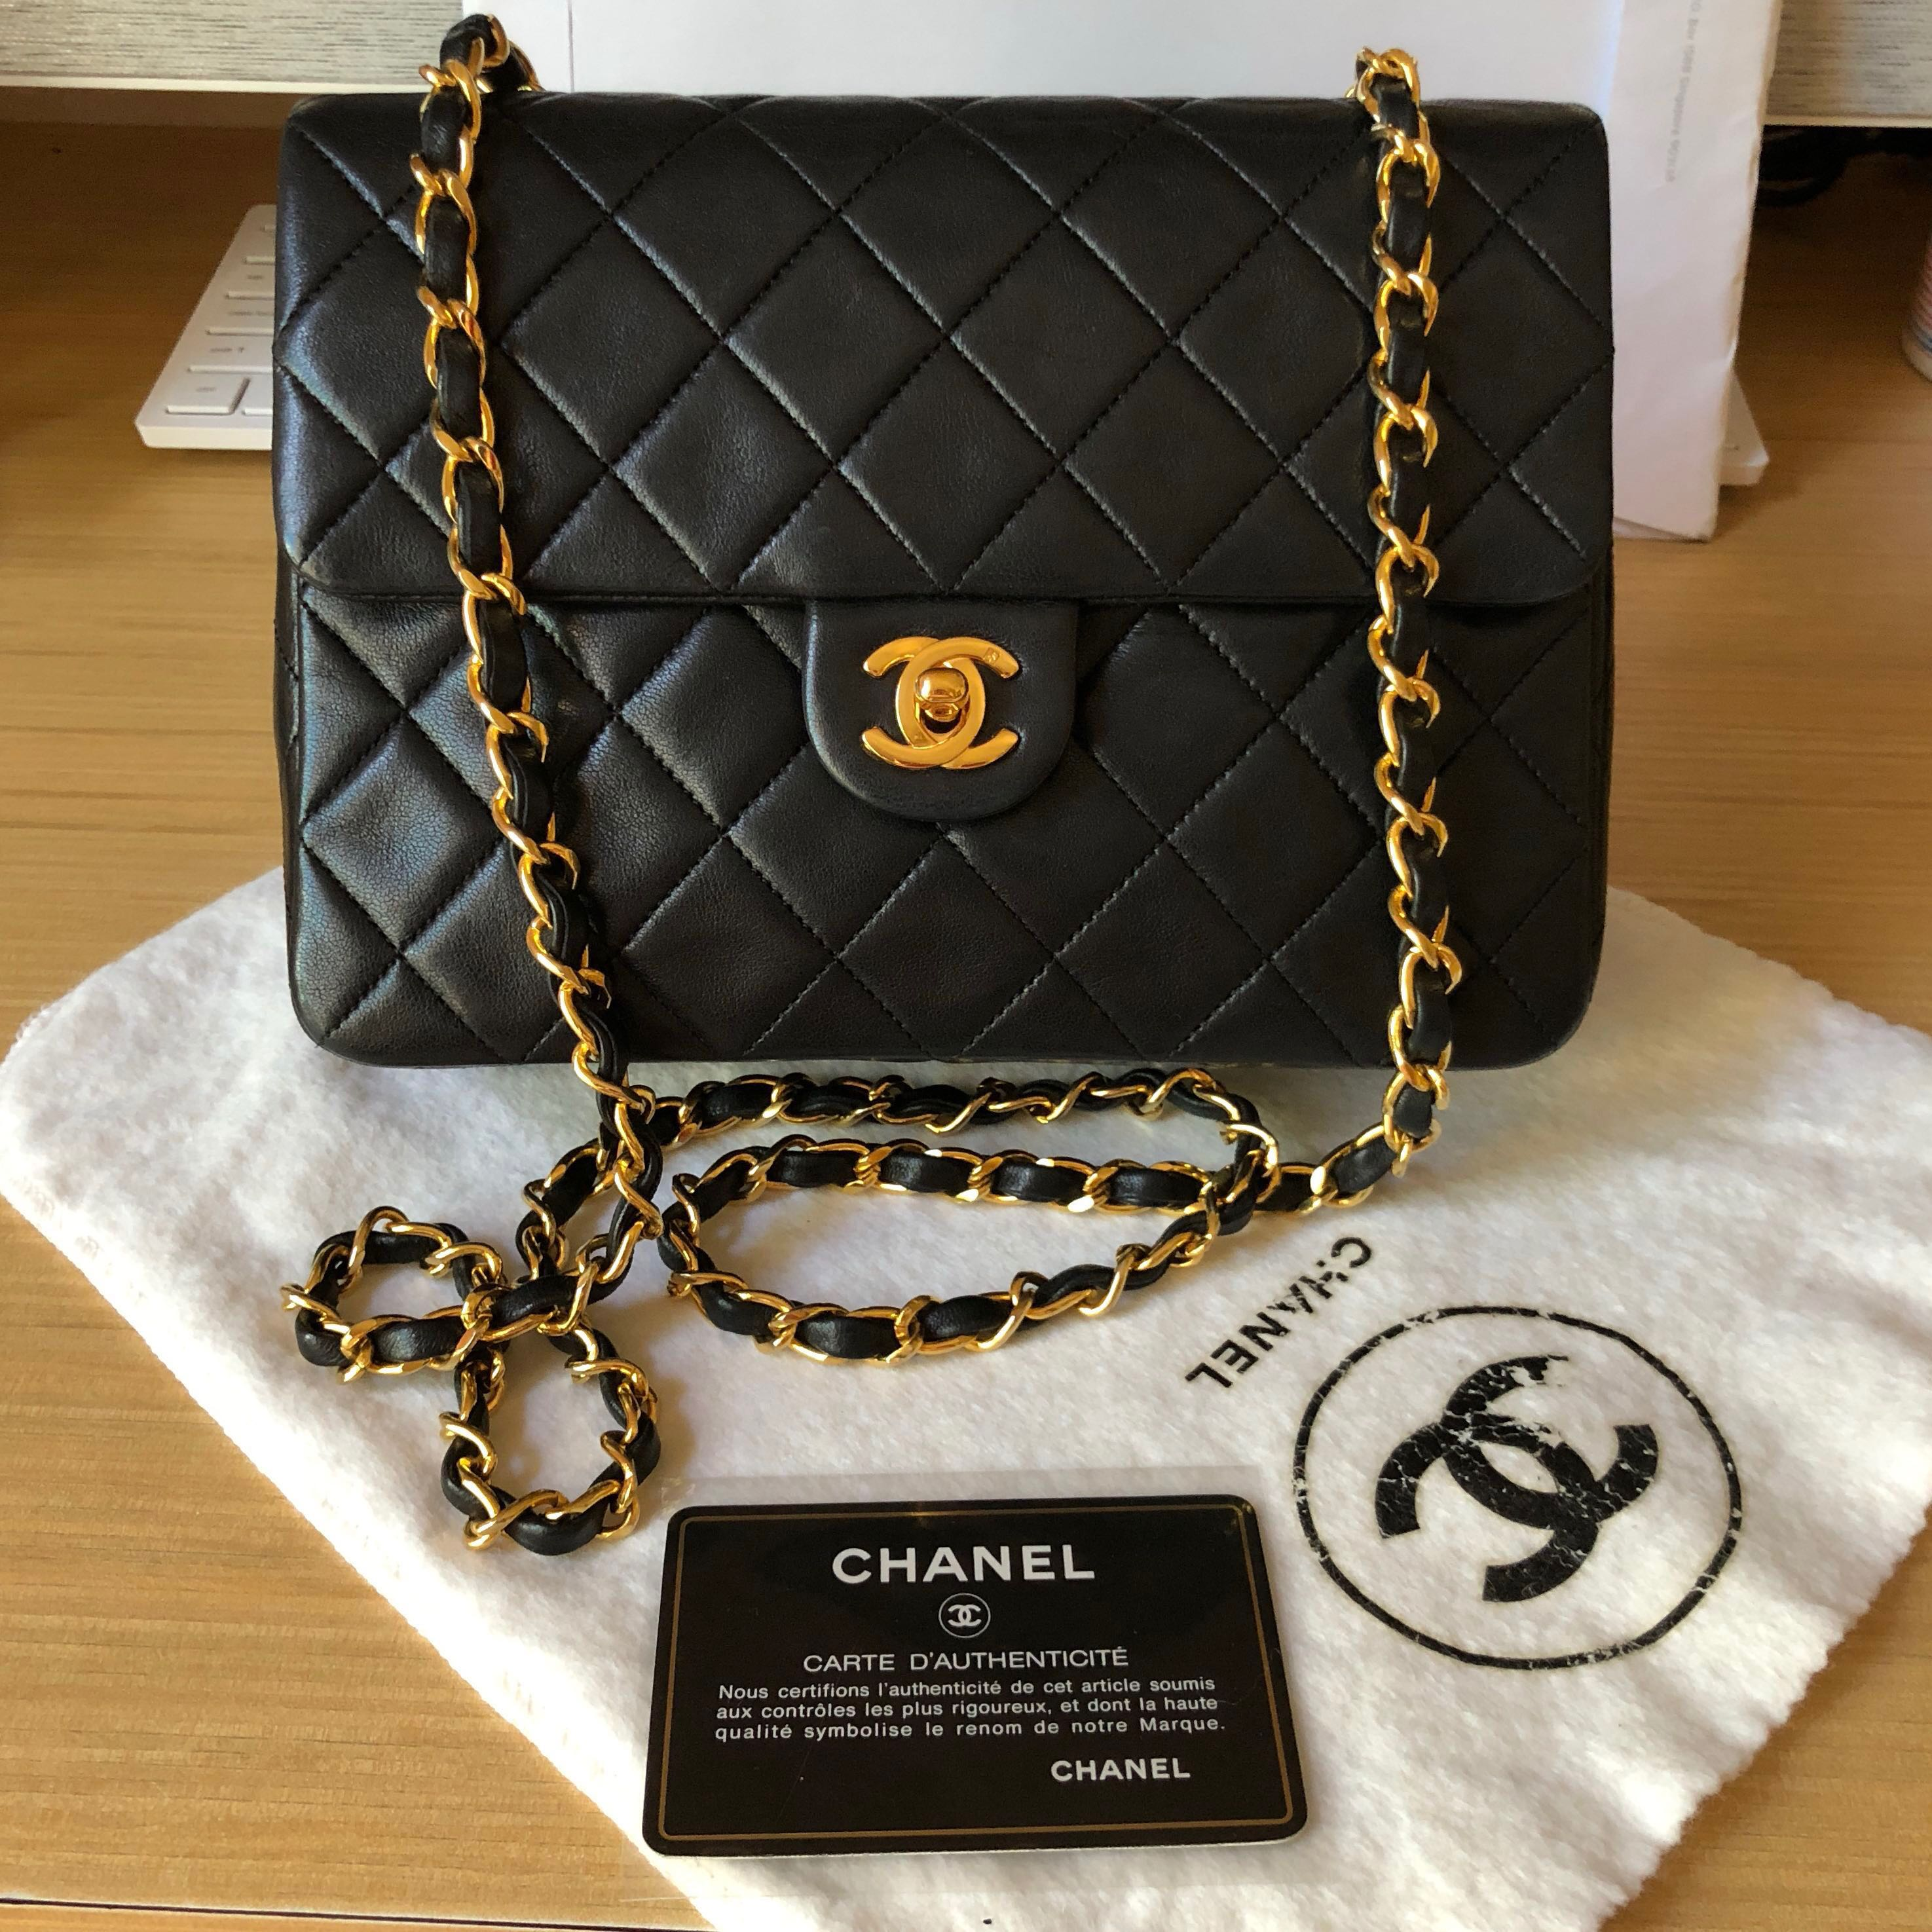 5d24dbfe3643 Authentic Vintage 20cm Square Mini GHW, Luxury, Bags & Wallets, Handbags on  Carousell